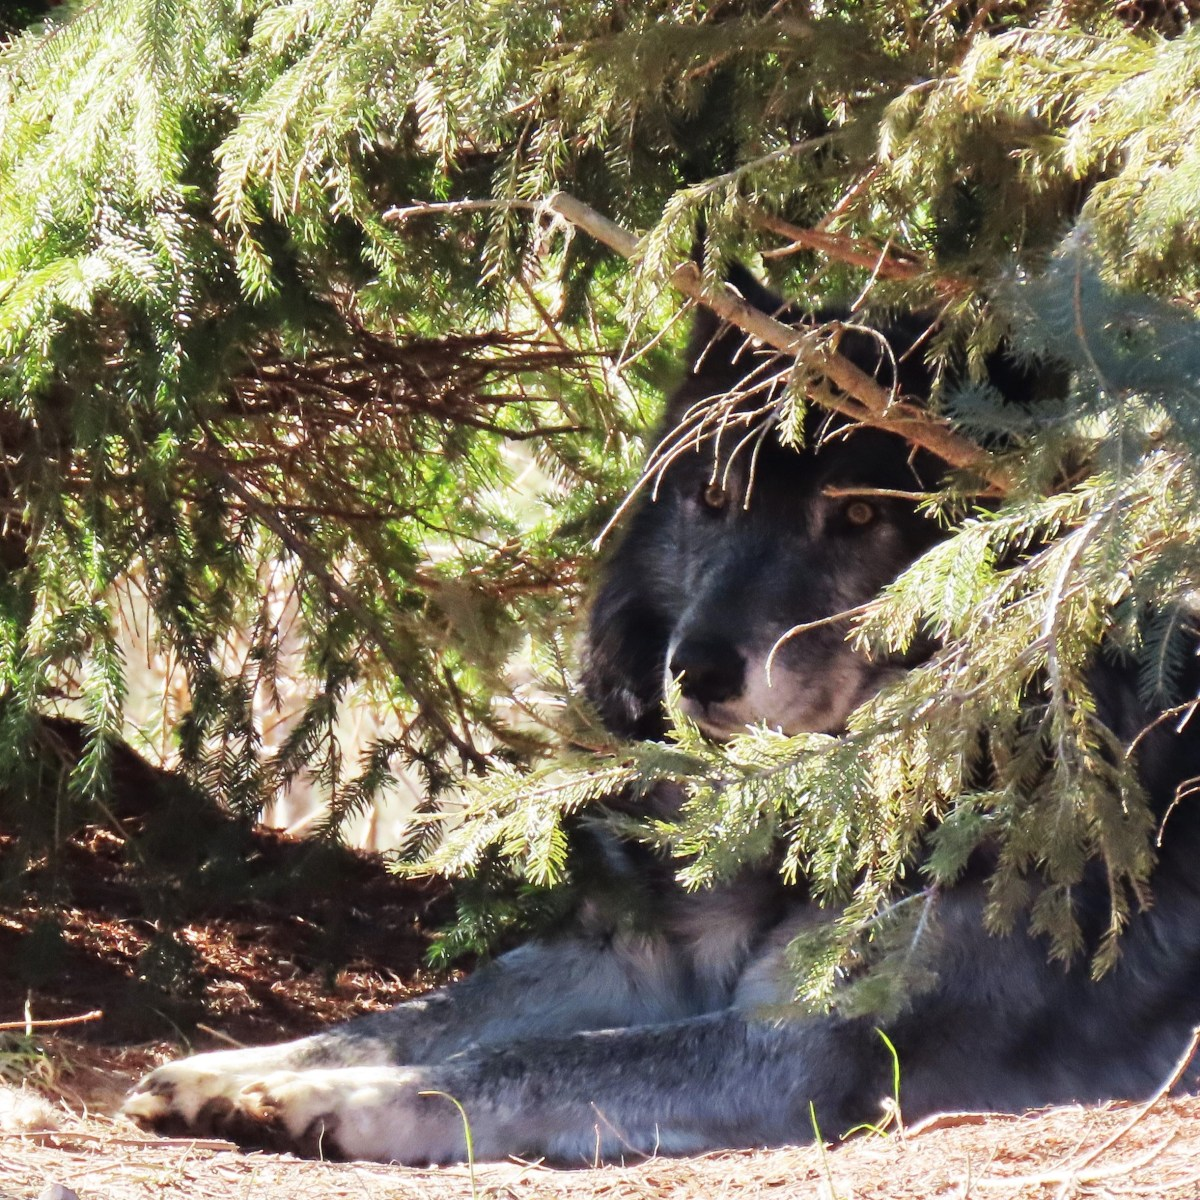 An almost hidden gray wolf looks out from where it lays under a pine tree